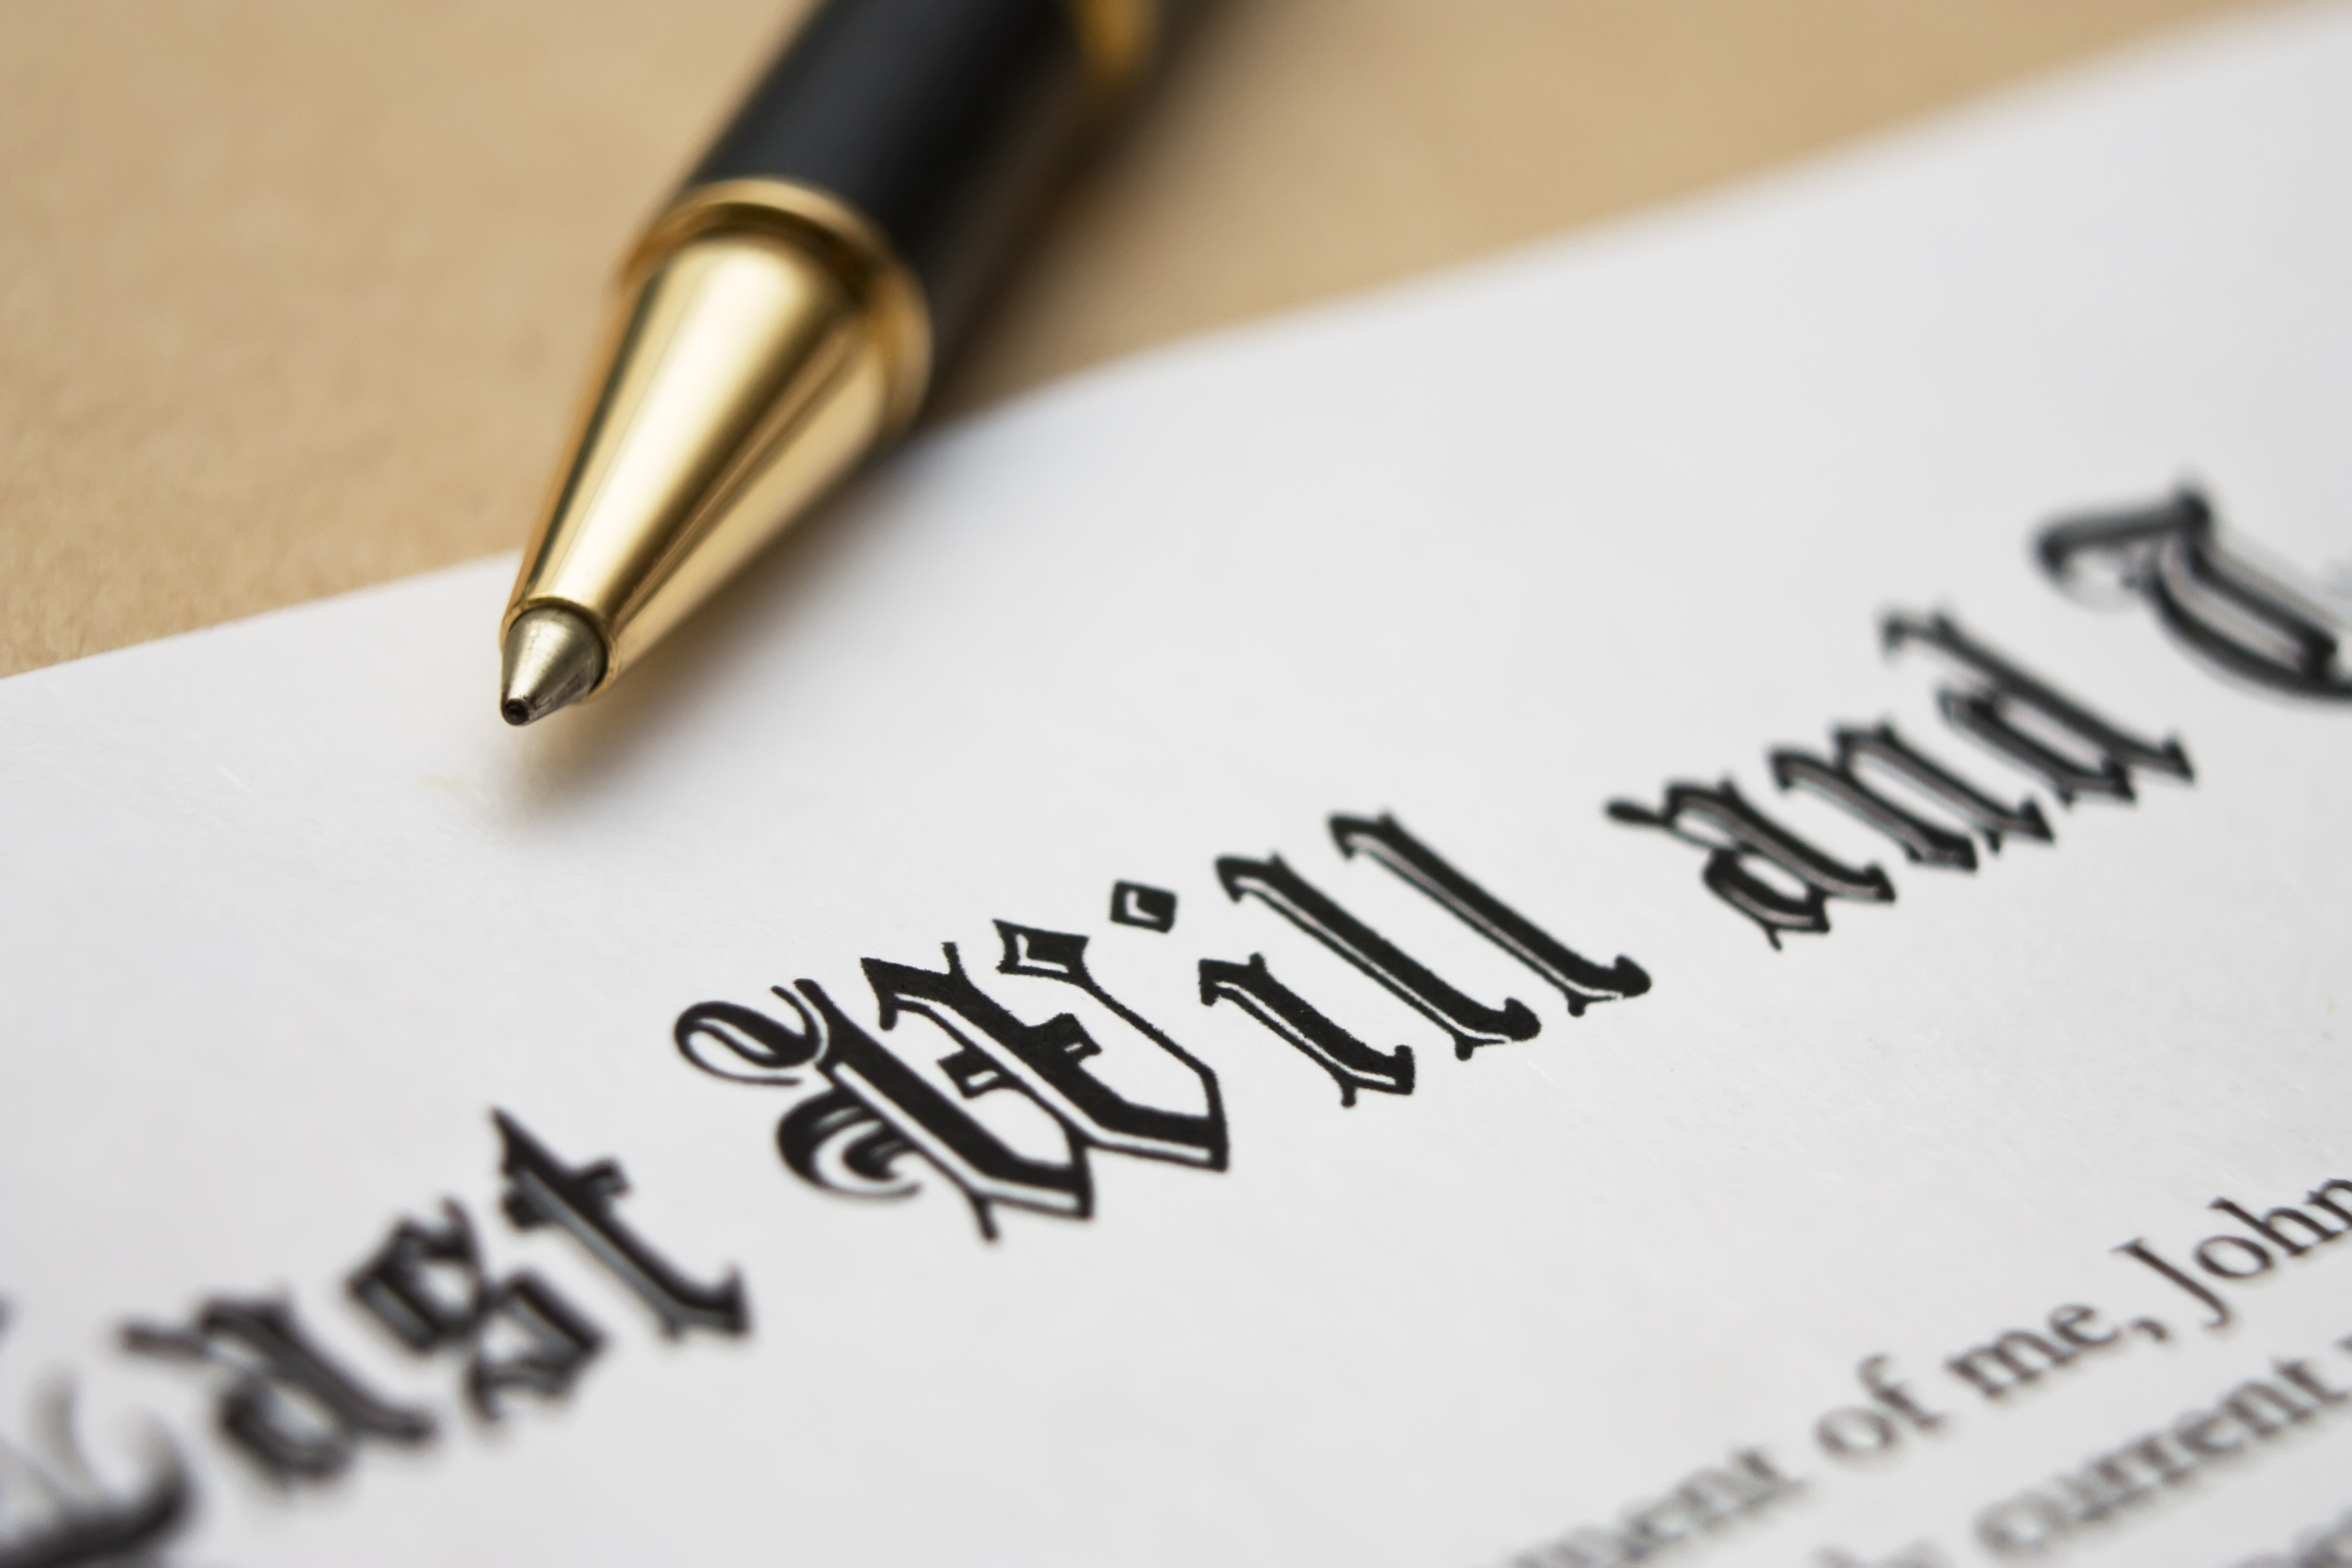 TRAN LAW FIRM Wills, Estate Planning and Administration - by The